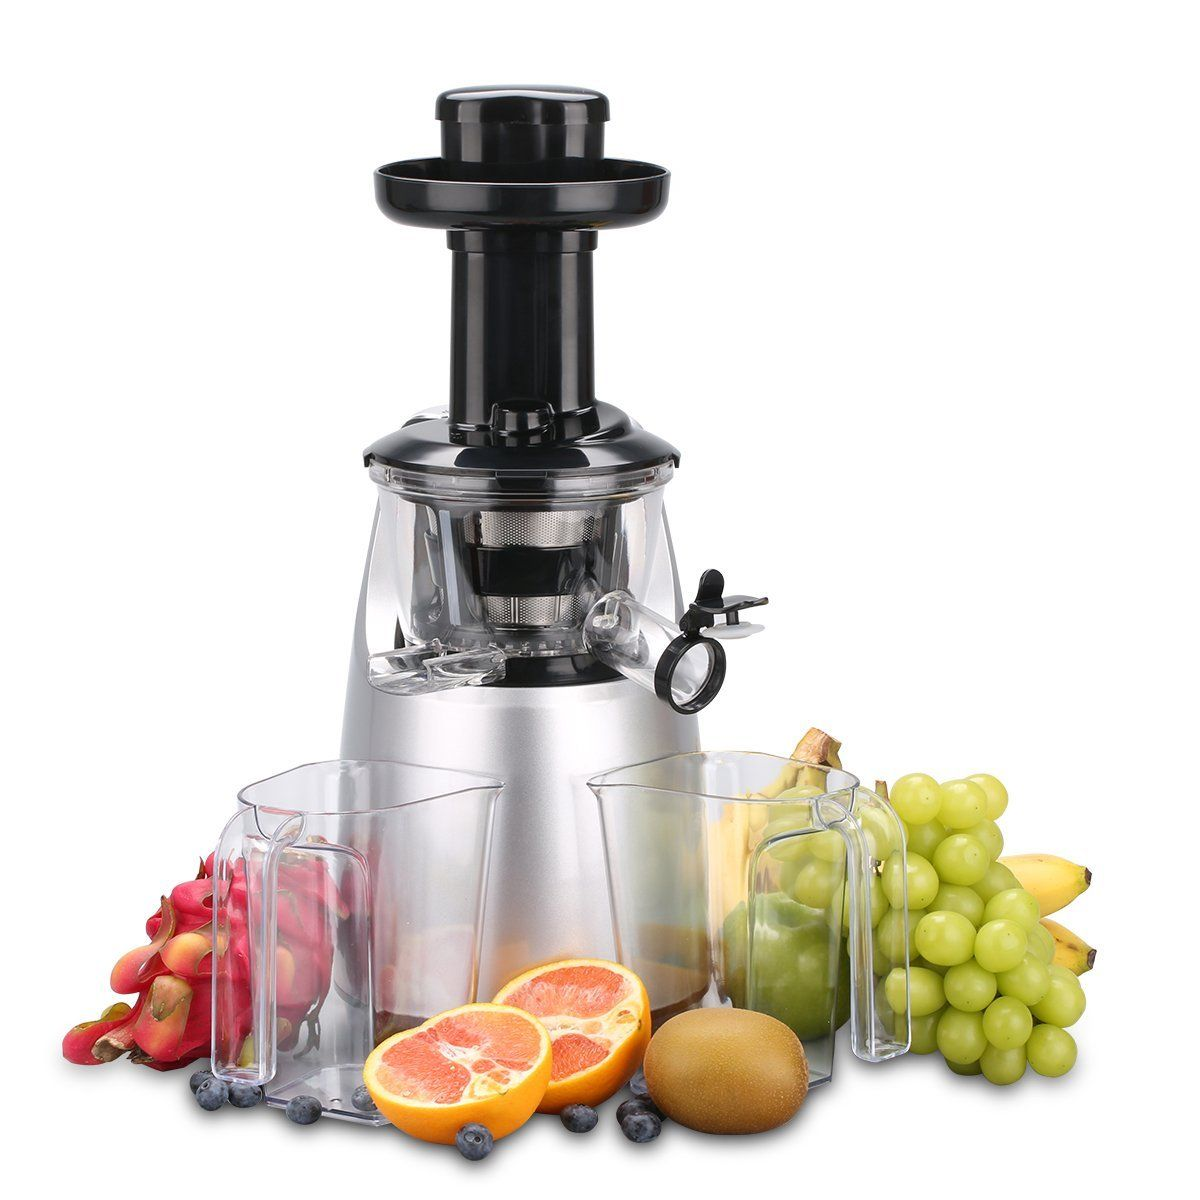 O-Breko Slow Masticating Juicer with 200W 65 RPM DC Motor and Reverse Function, Spraying Silver * Details can be found by clicking on the image.